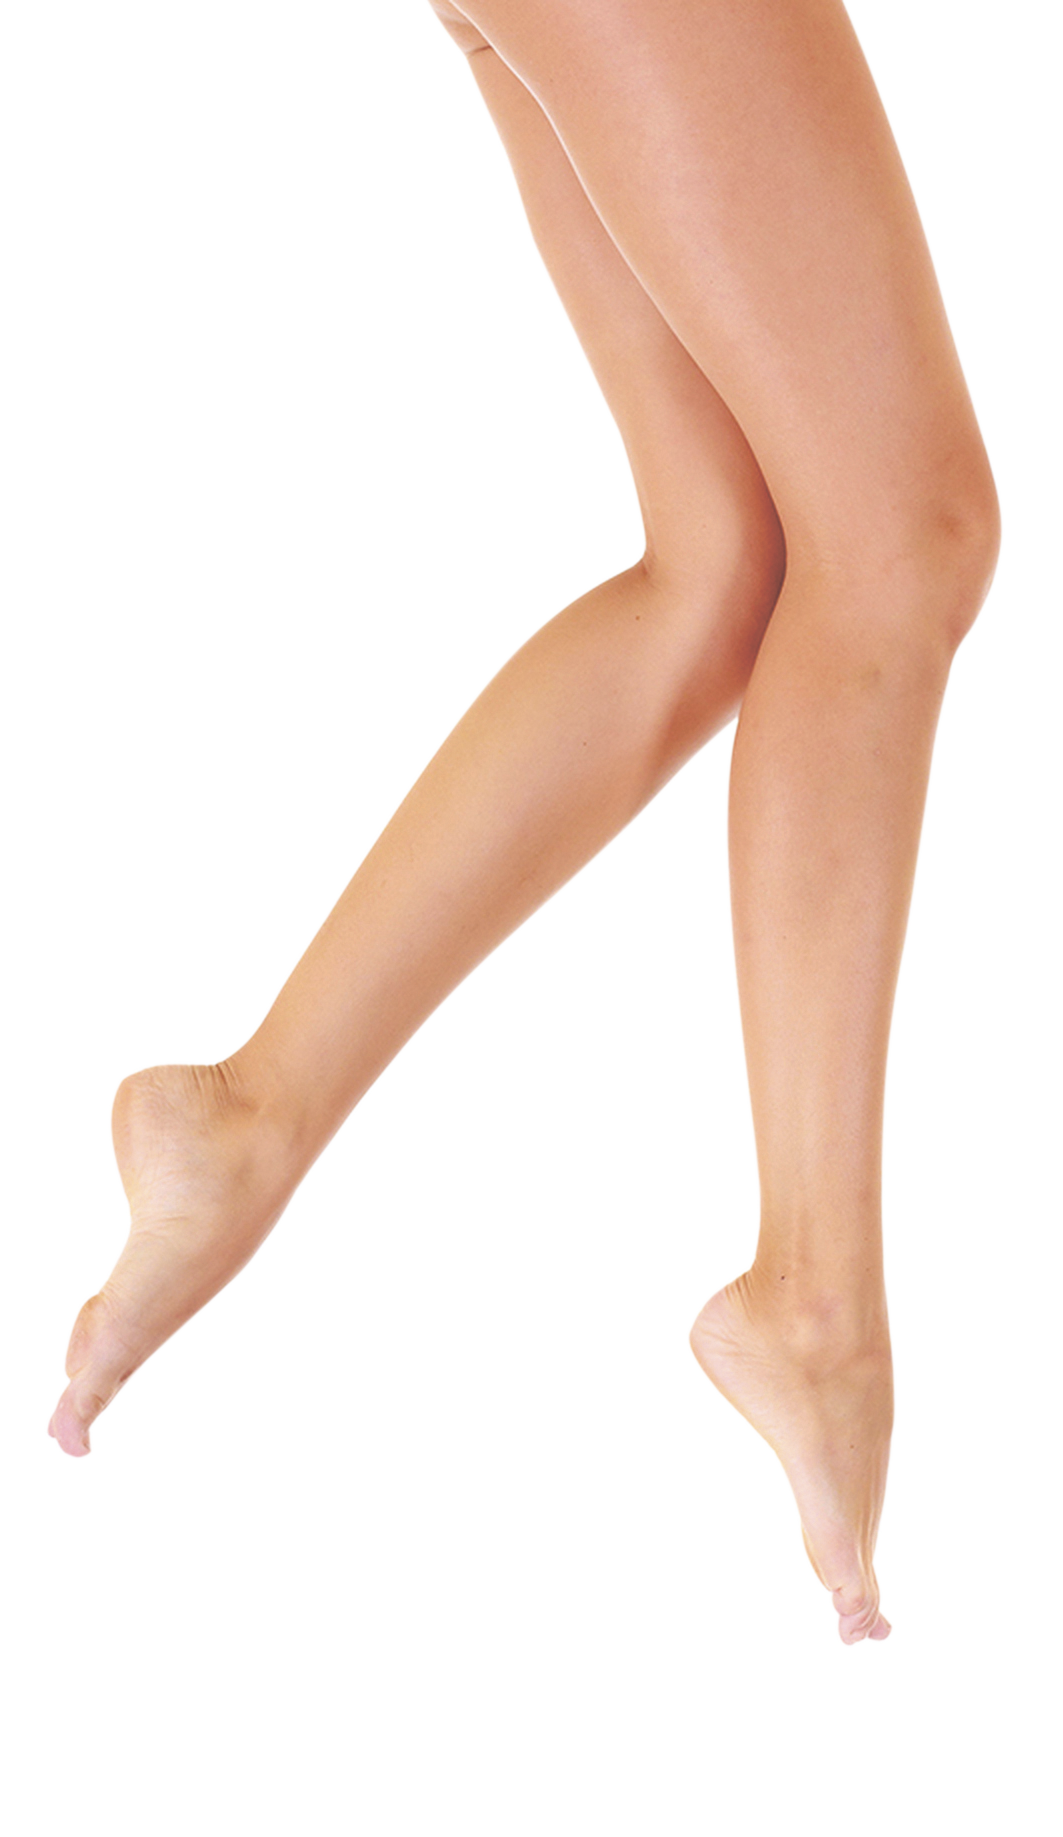 Legs clipart ankle joint. Women png image